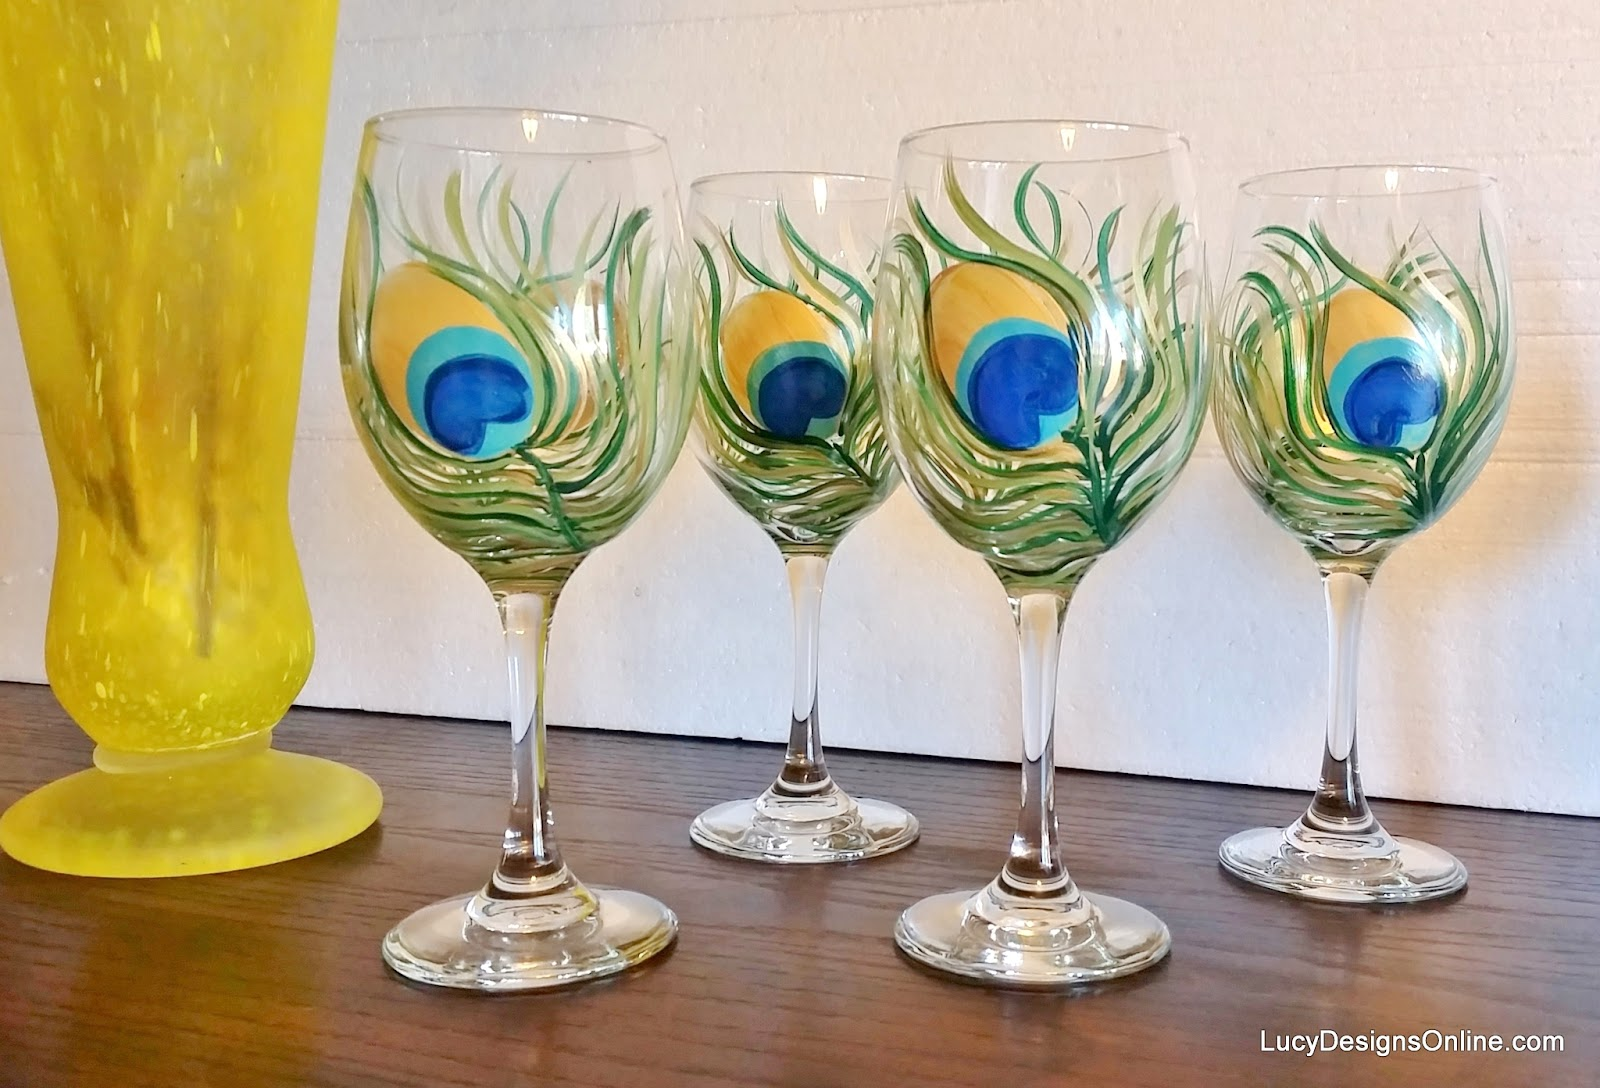 Diy hand painted wine glasses with peacock feather design for Type of paint to use on wine glasses